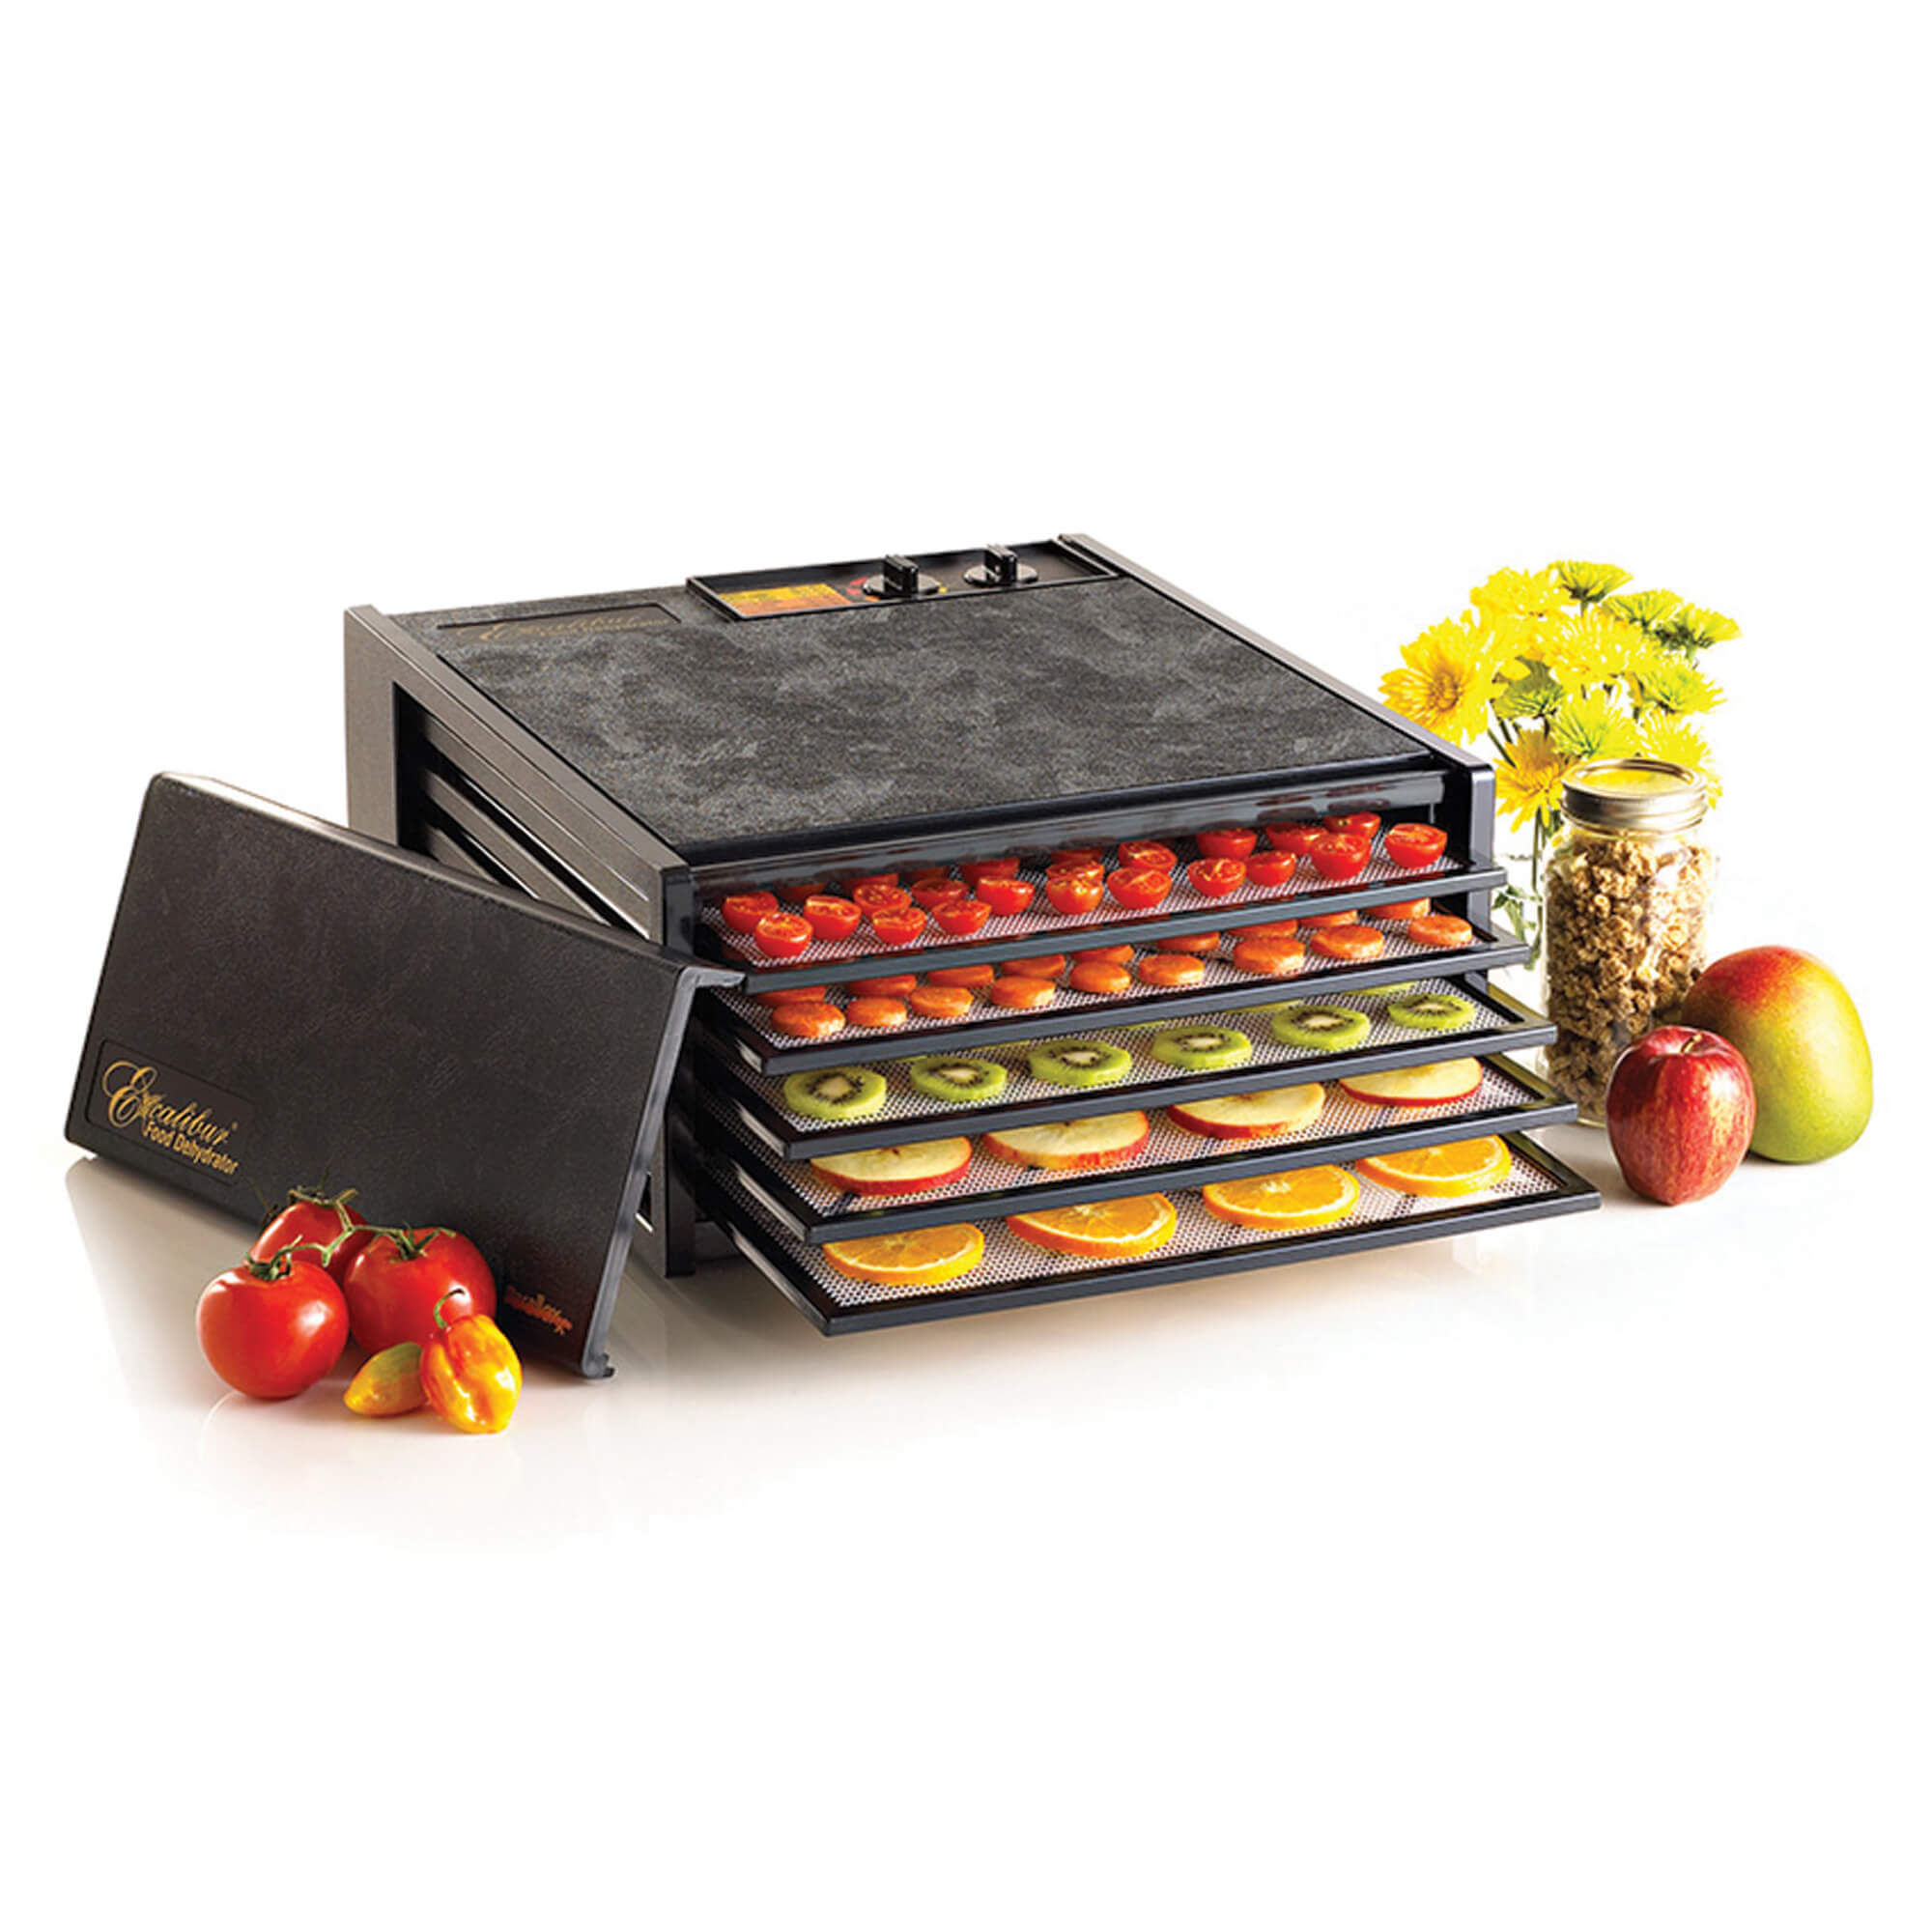 Excalibur 4526T 5 tray dehydrator with door propped to the side and food on the trays.